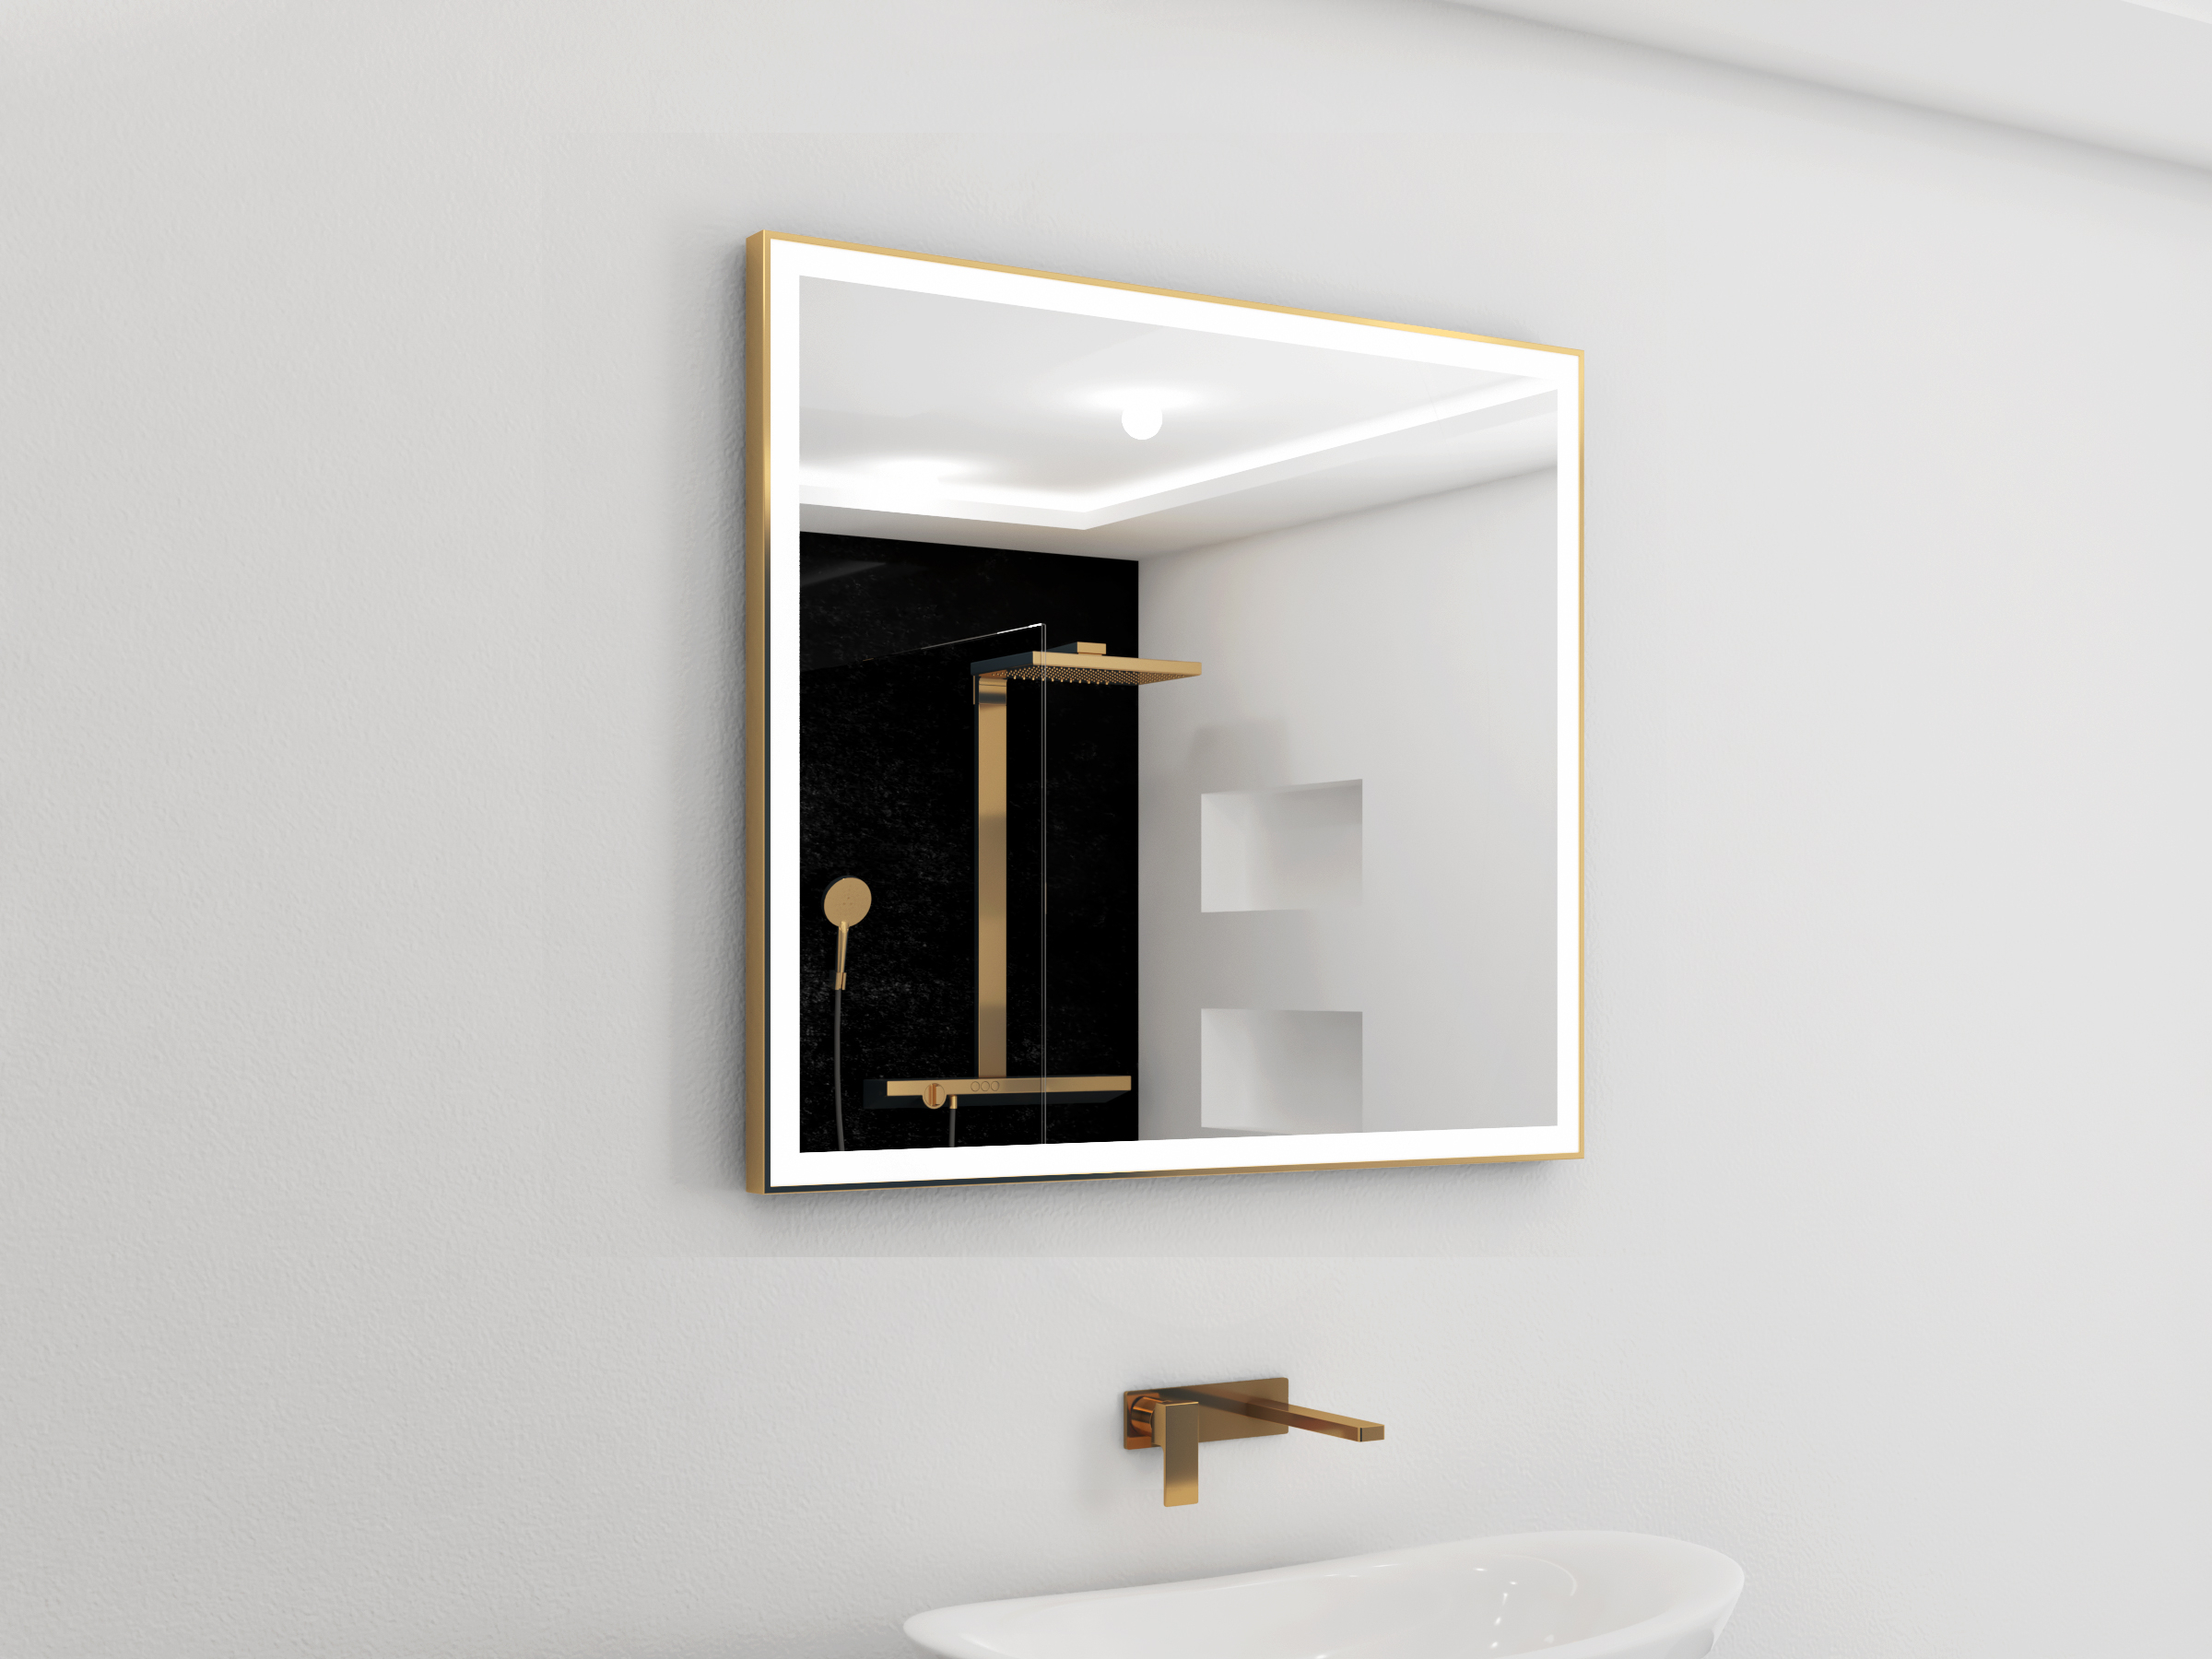 Well Known Backlit Bathroom Wall Mirrors Throughout Ibmirror – Modern Lighted Bathroom Mirror – Backlit Bathroom Mirror (View 15 of 20)